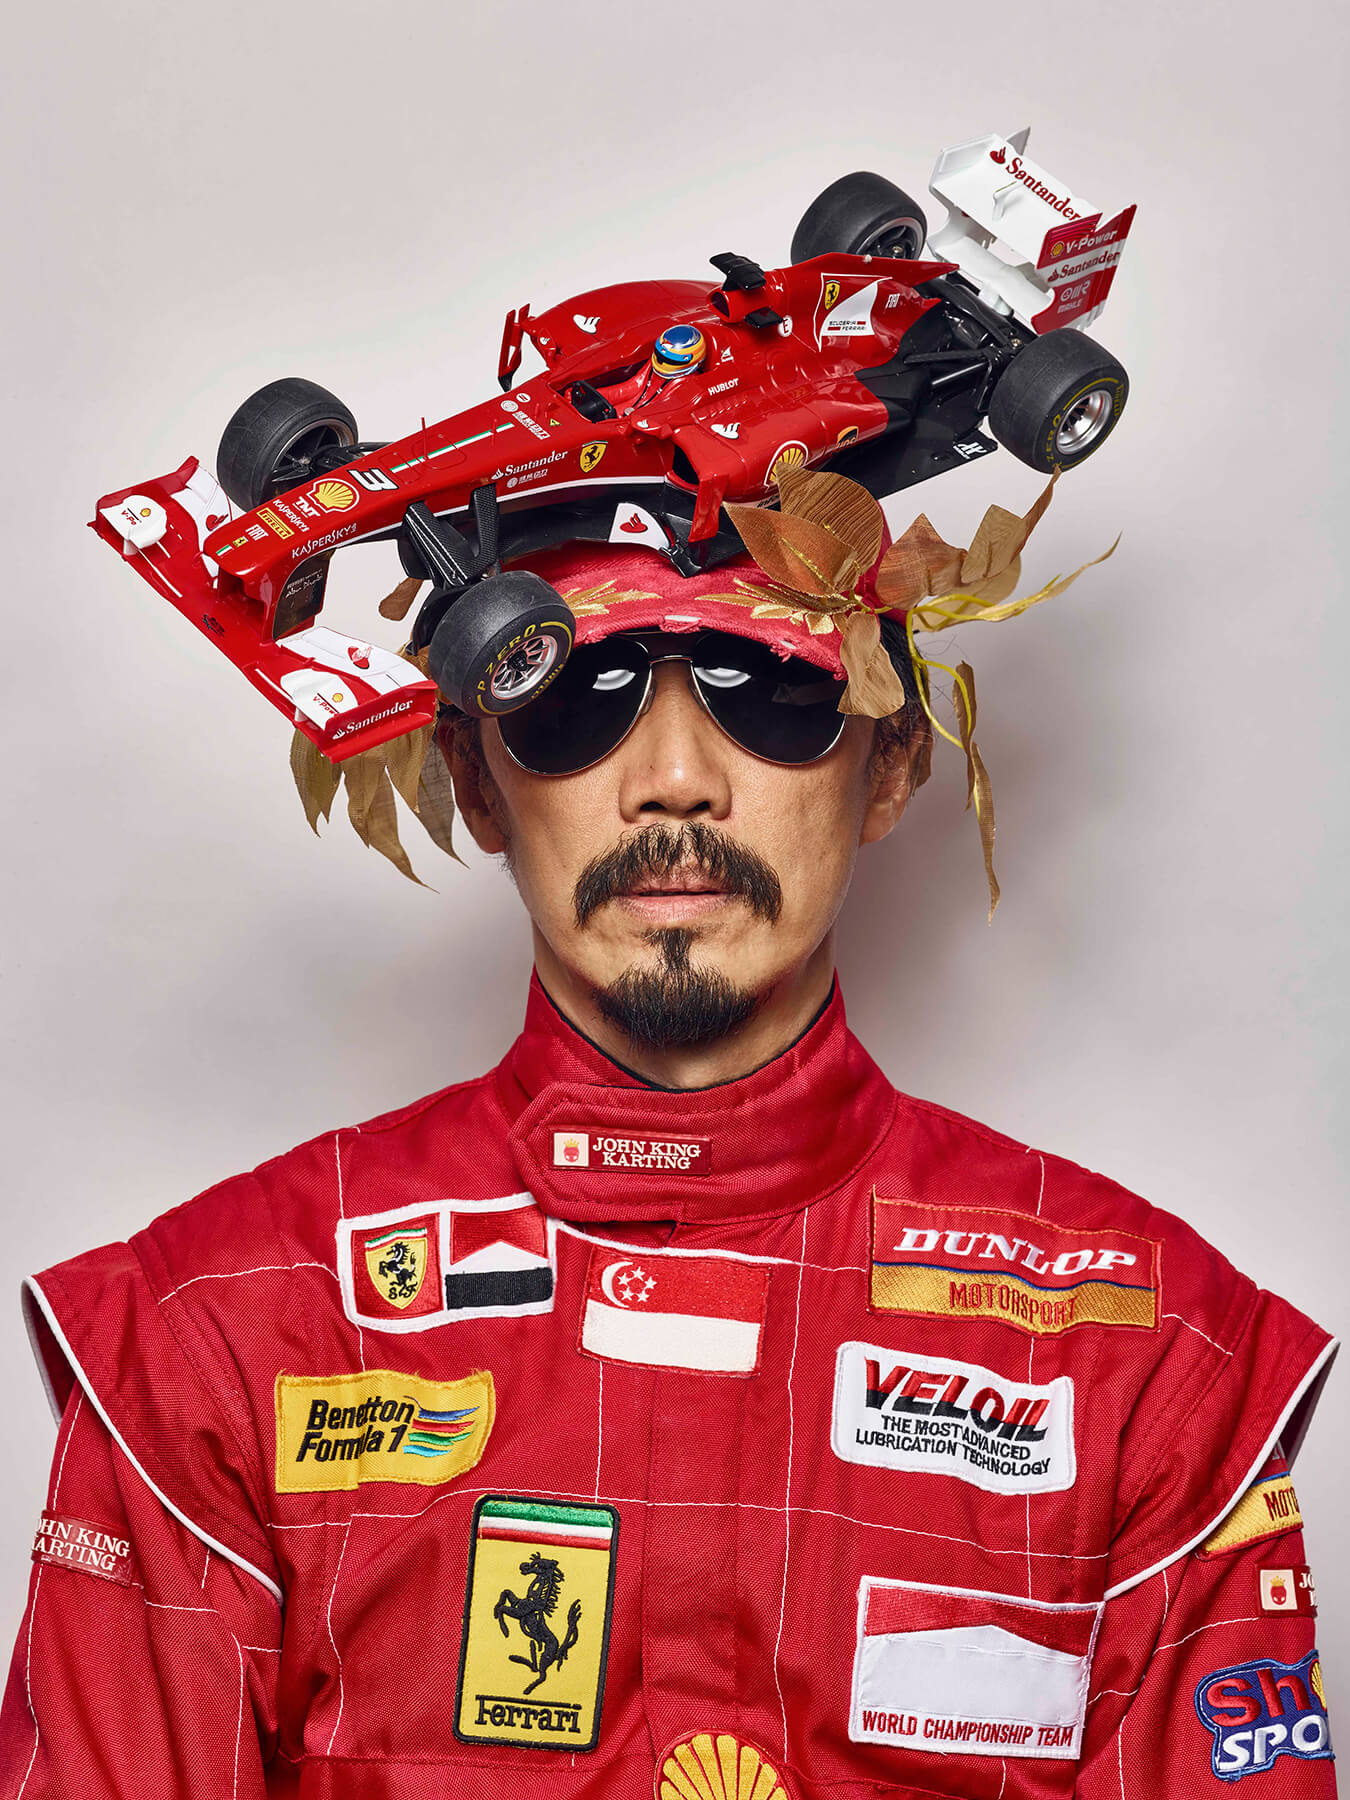 9 Sep 2017: Derong is dressed in F1 racing gear, with an F1 racing car model on his head